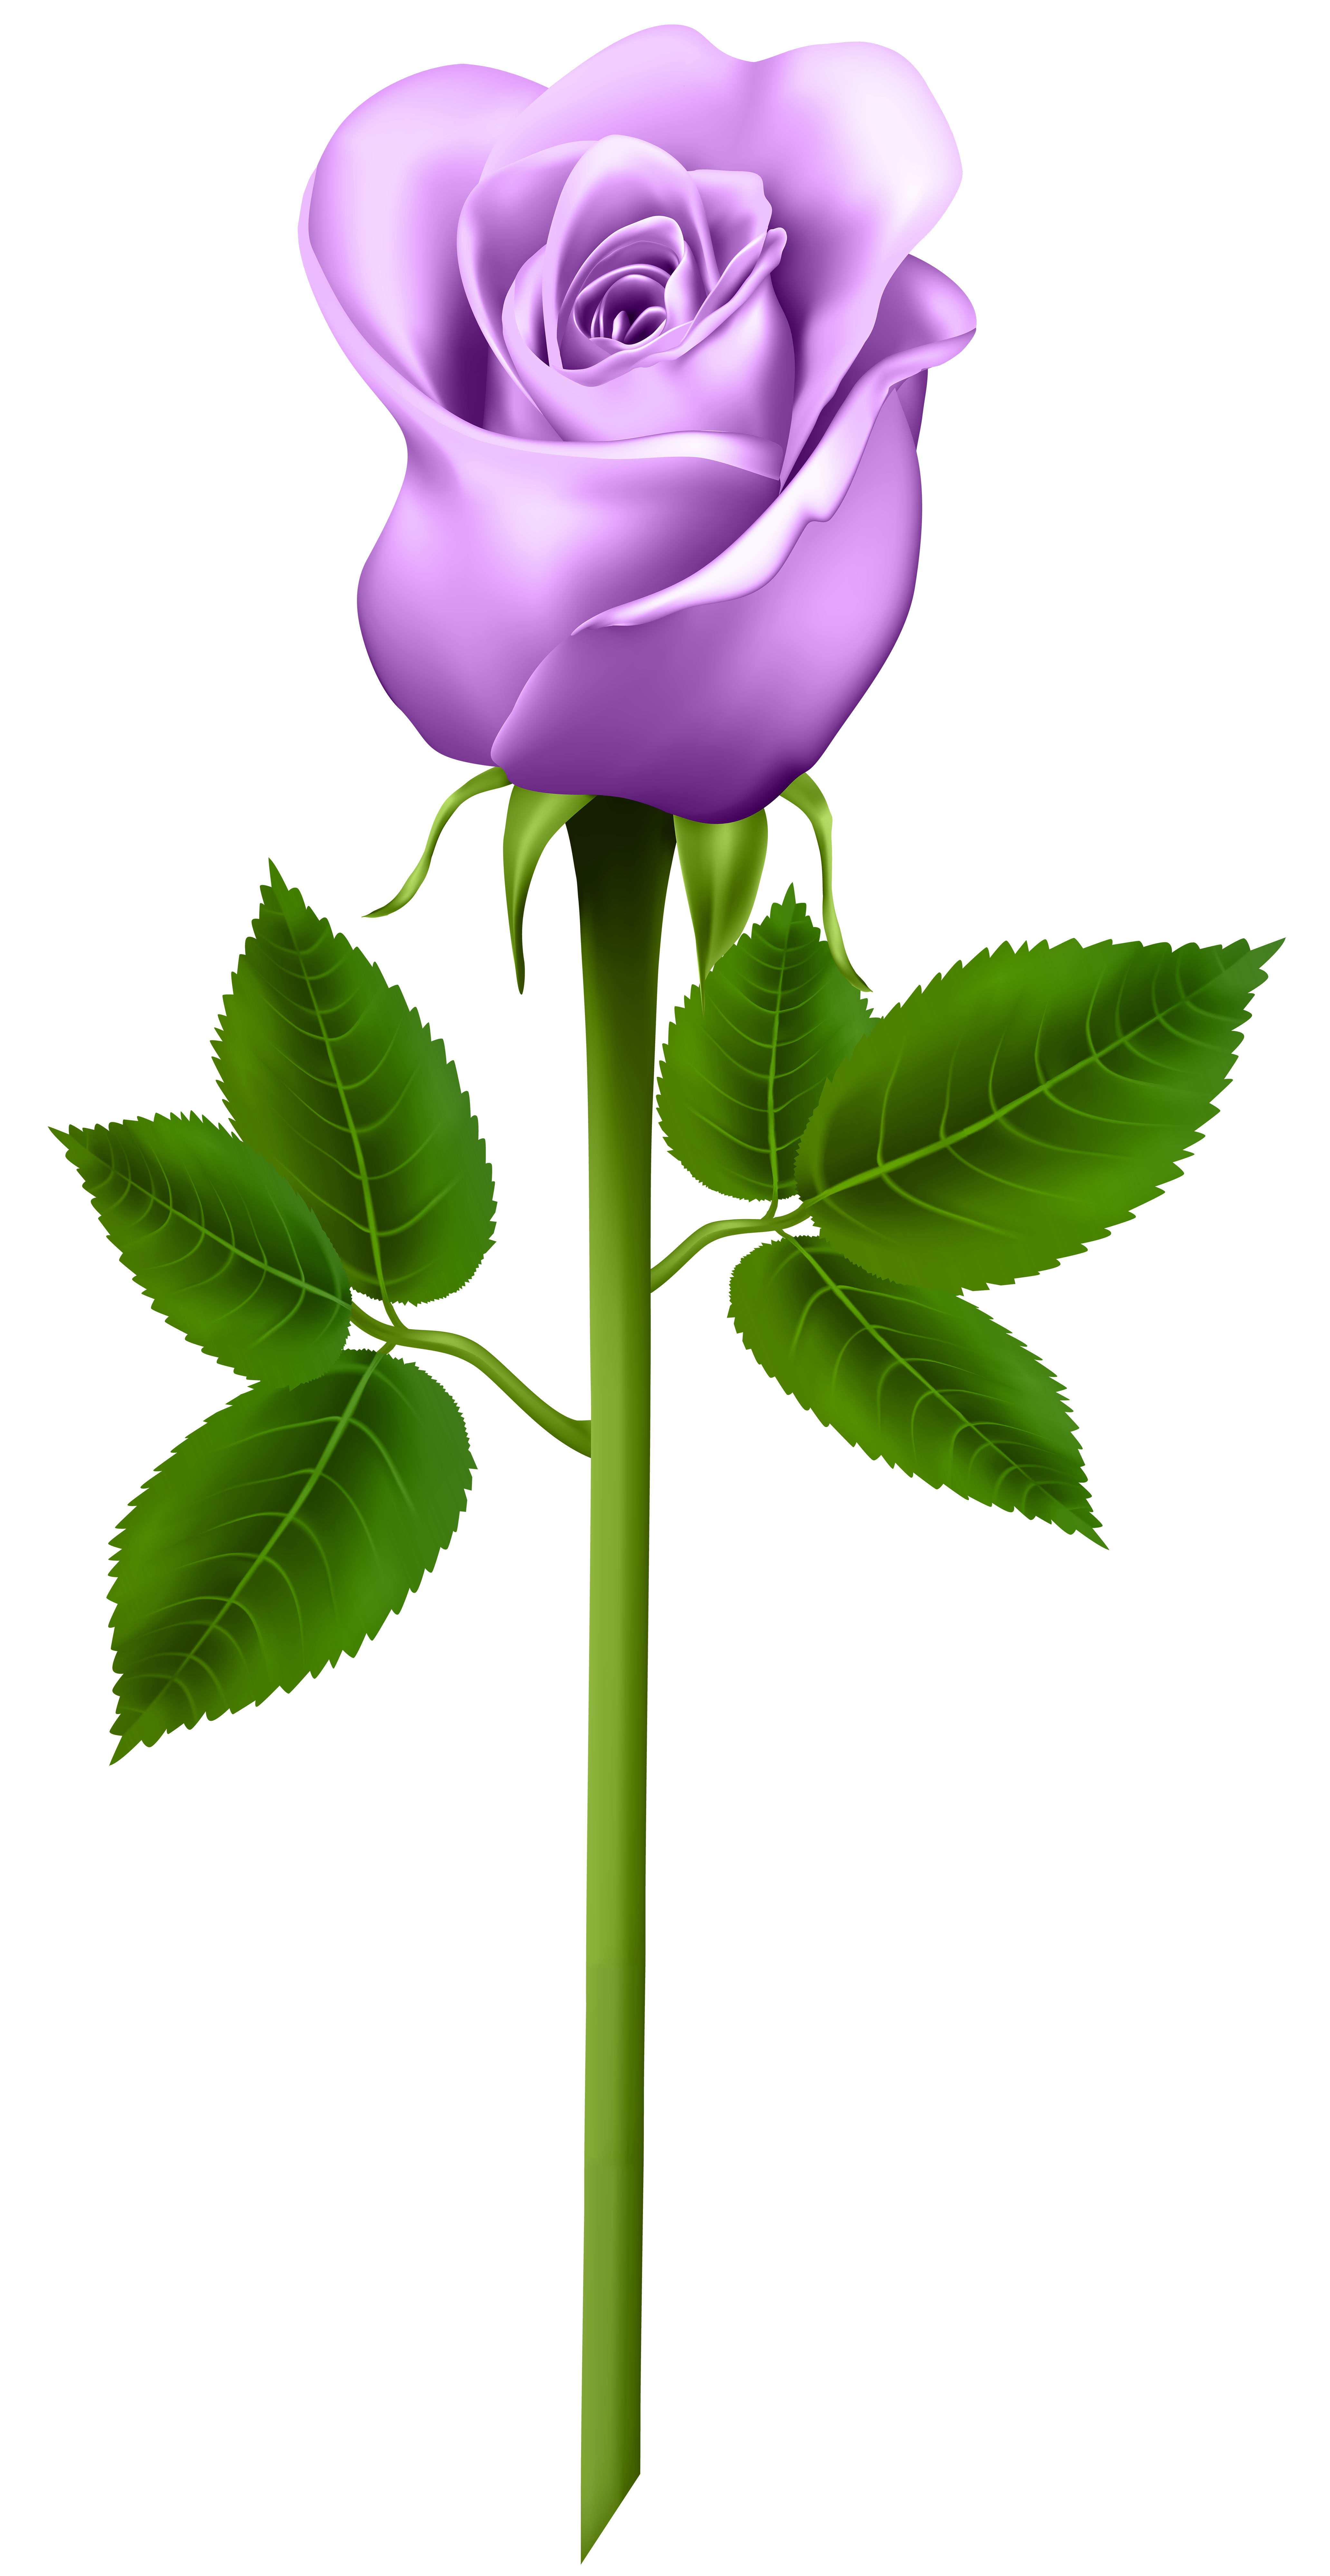 Purple rose png. Transparent image gallery yopriceville